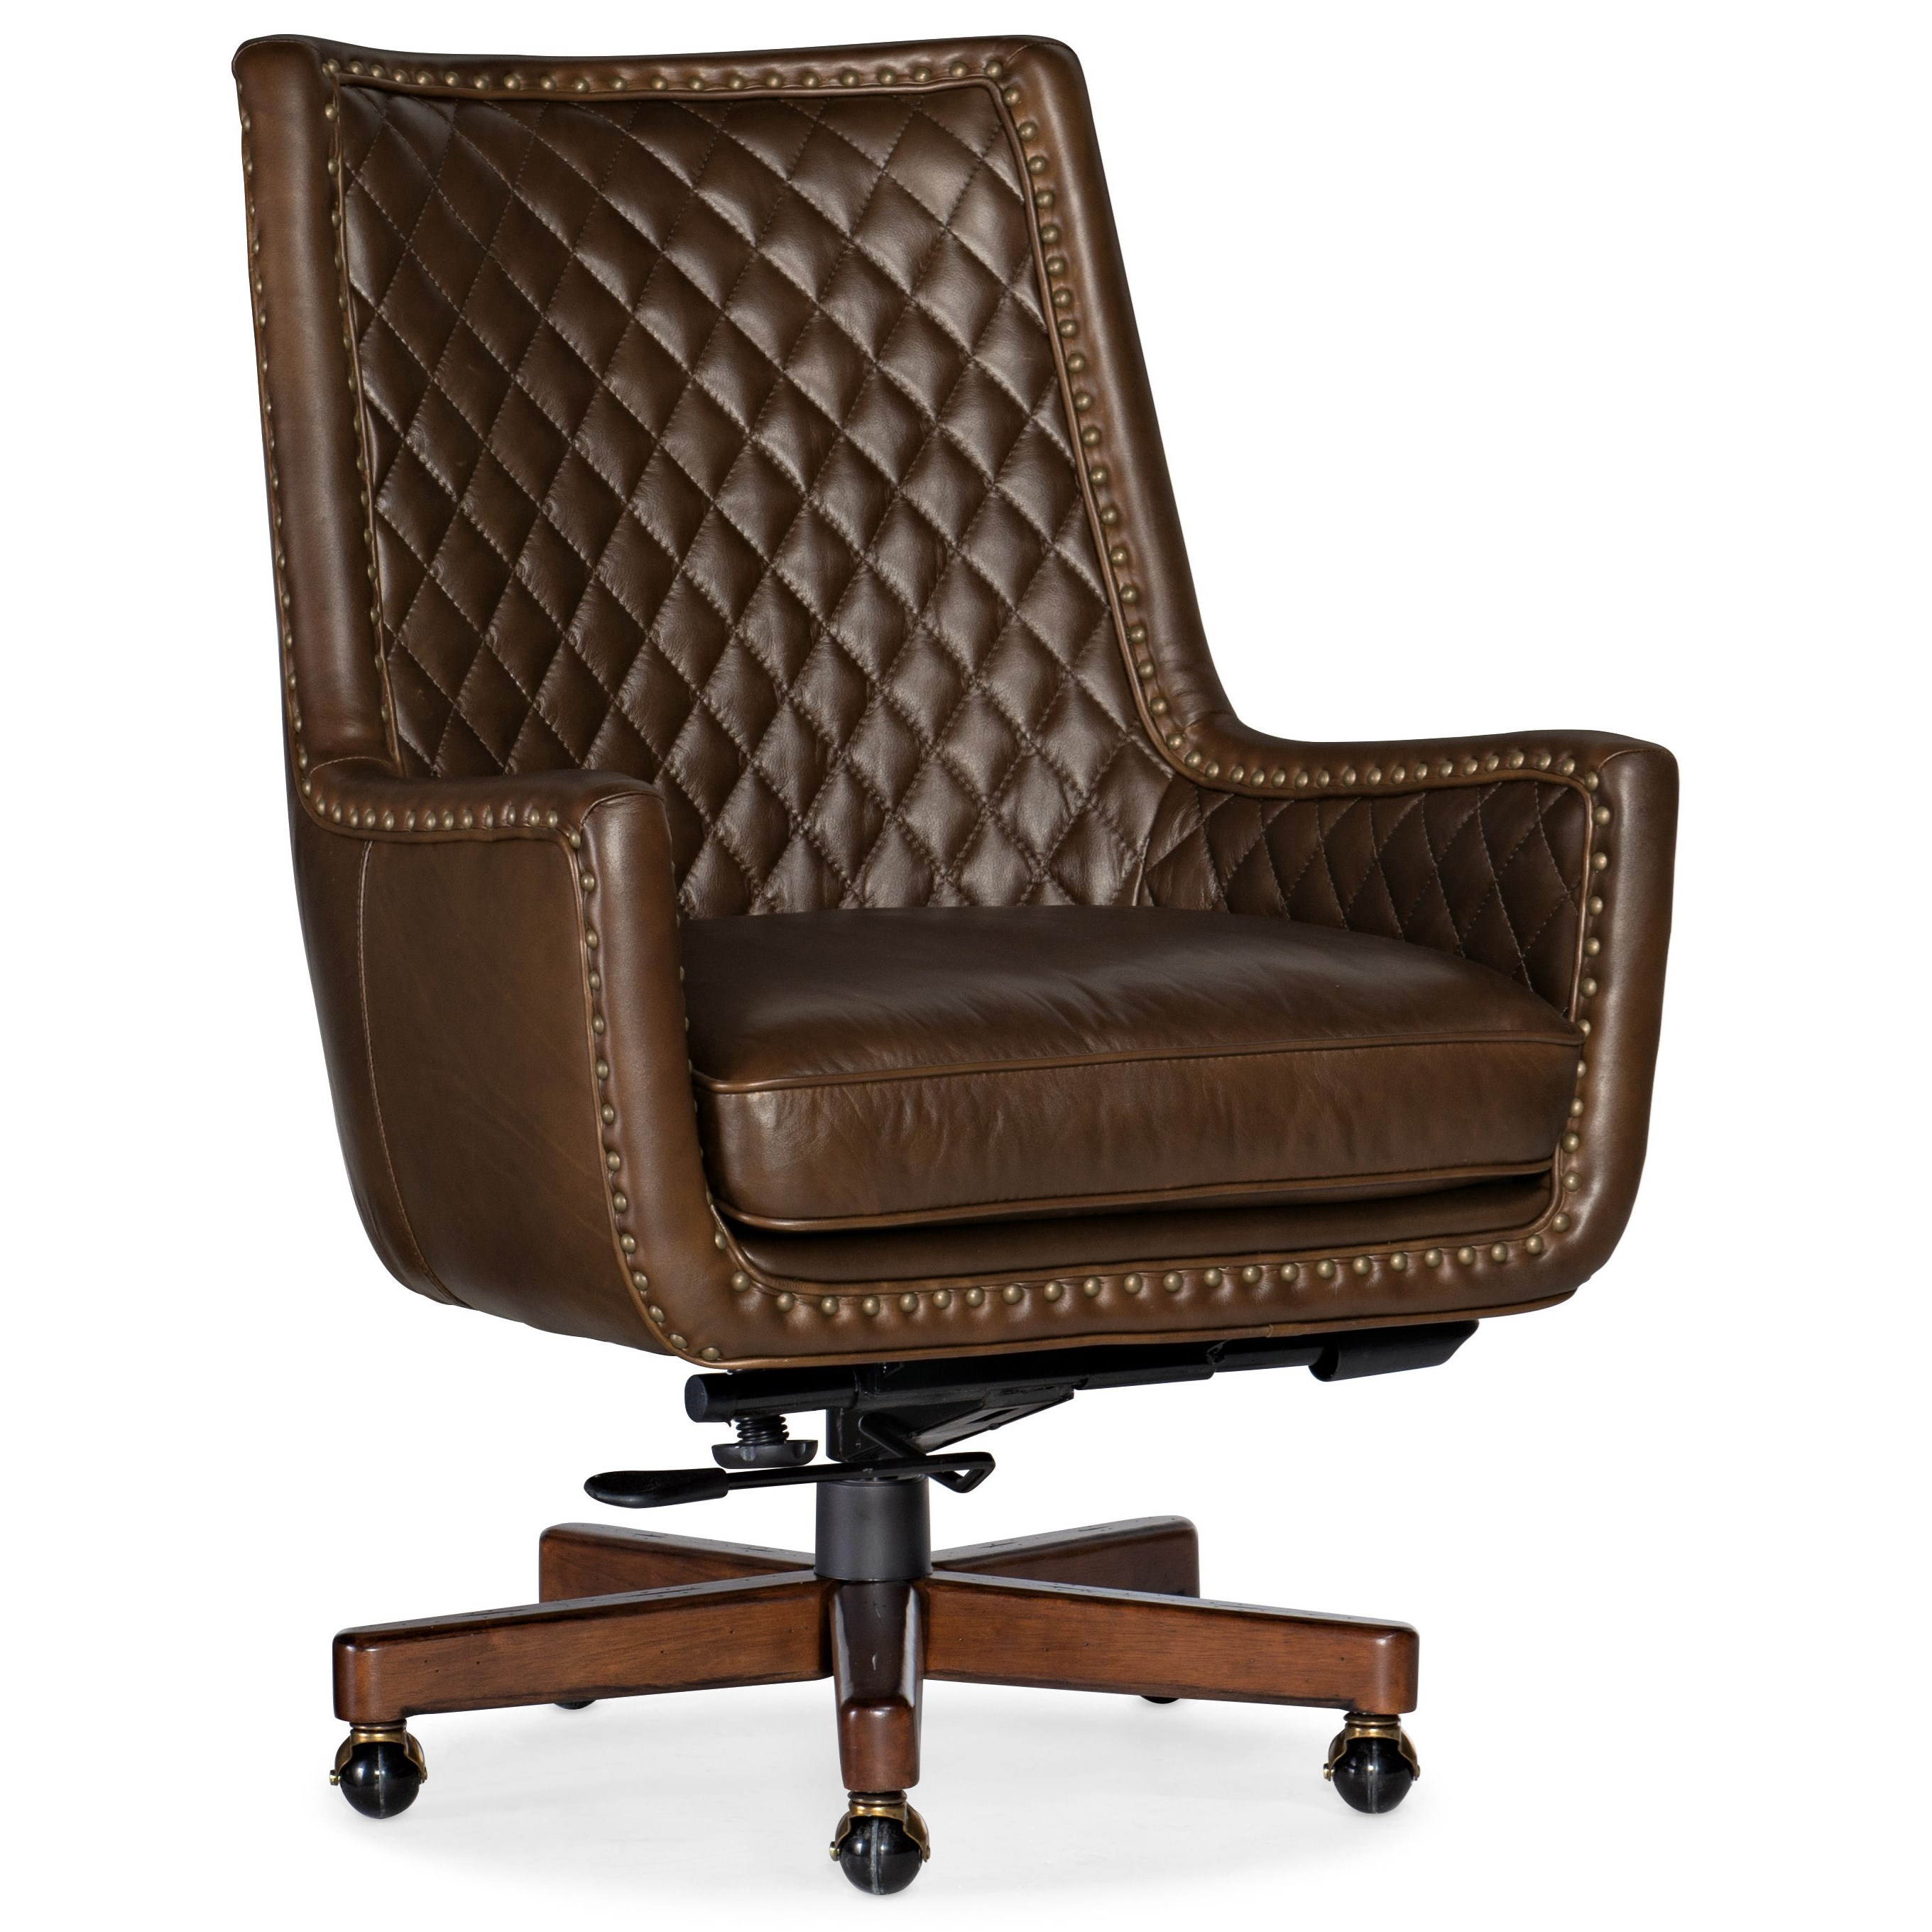 Executive Seating Kent Executive Swivel Tilt Chair by Hooker Furniture at Baer's Furniture